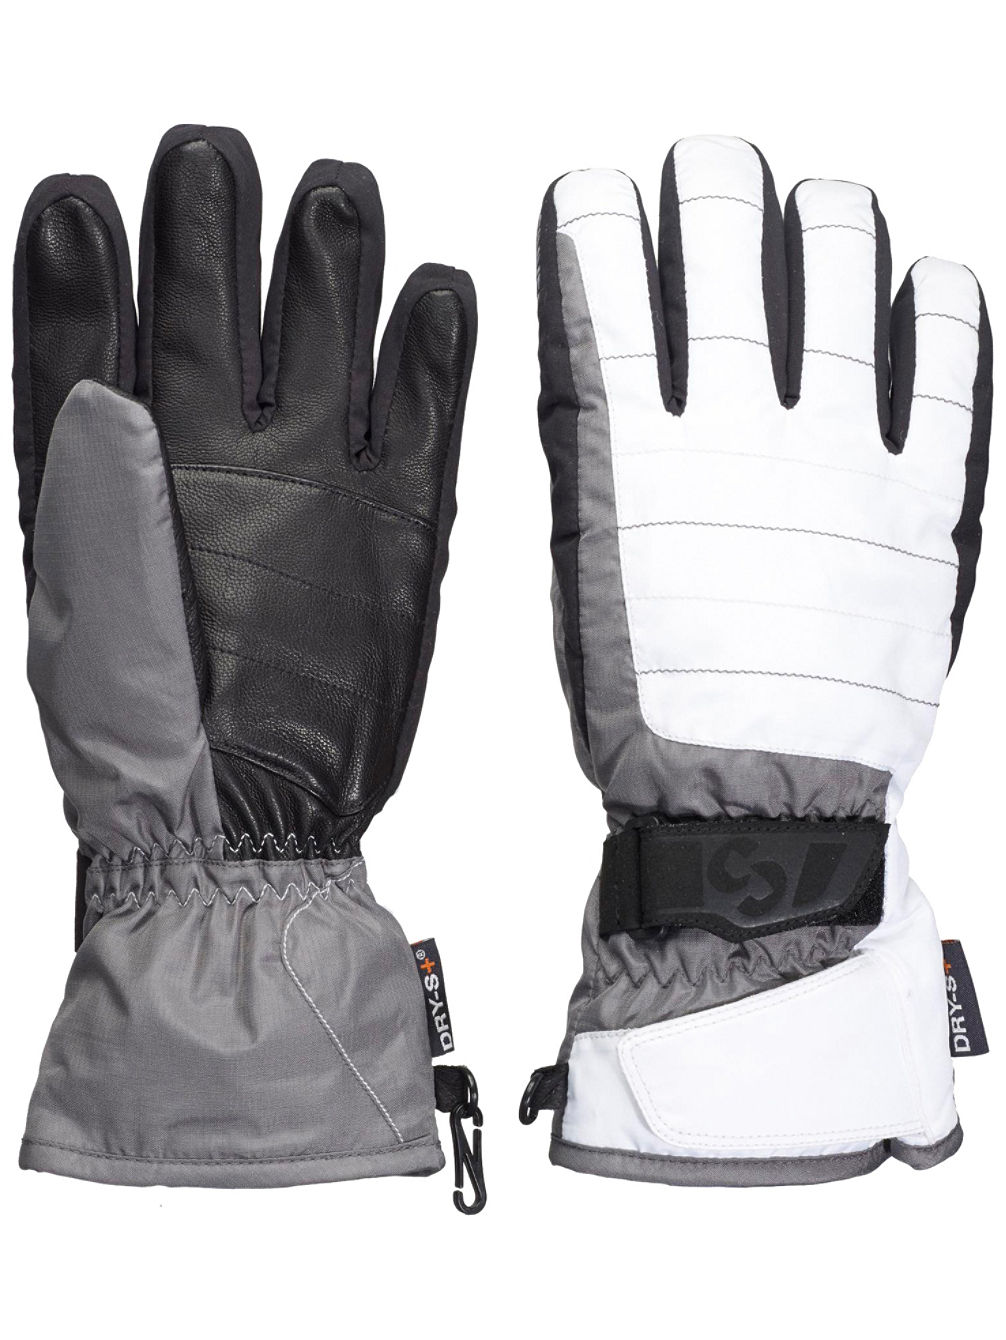 Mullan Gloves